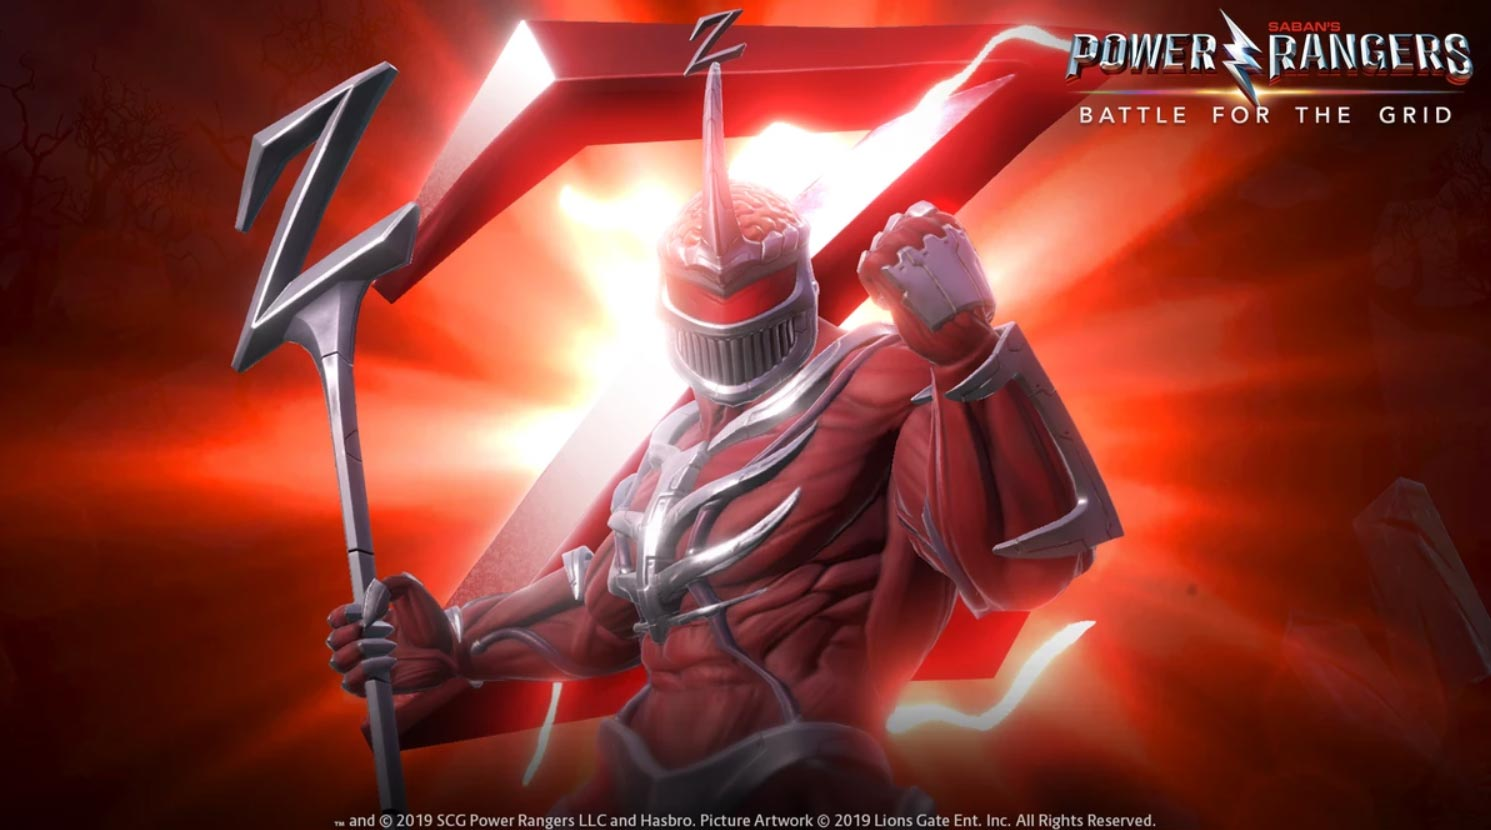 Power Rangers Lord Zedd 1 out of 6 image gallery